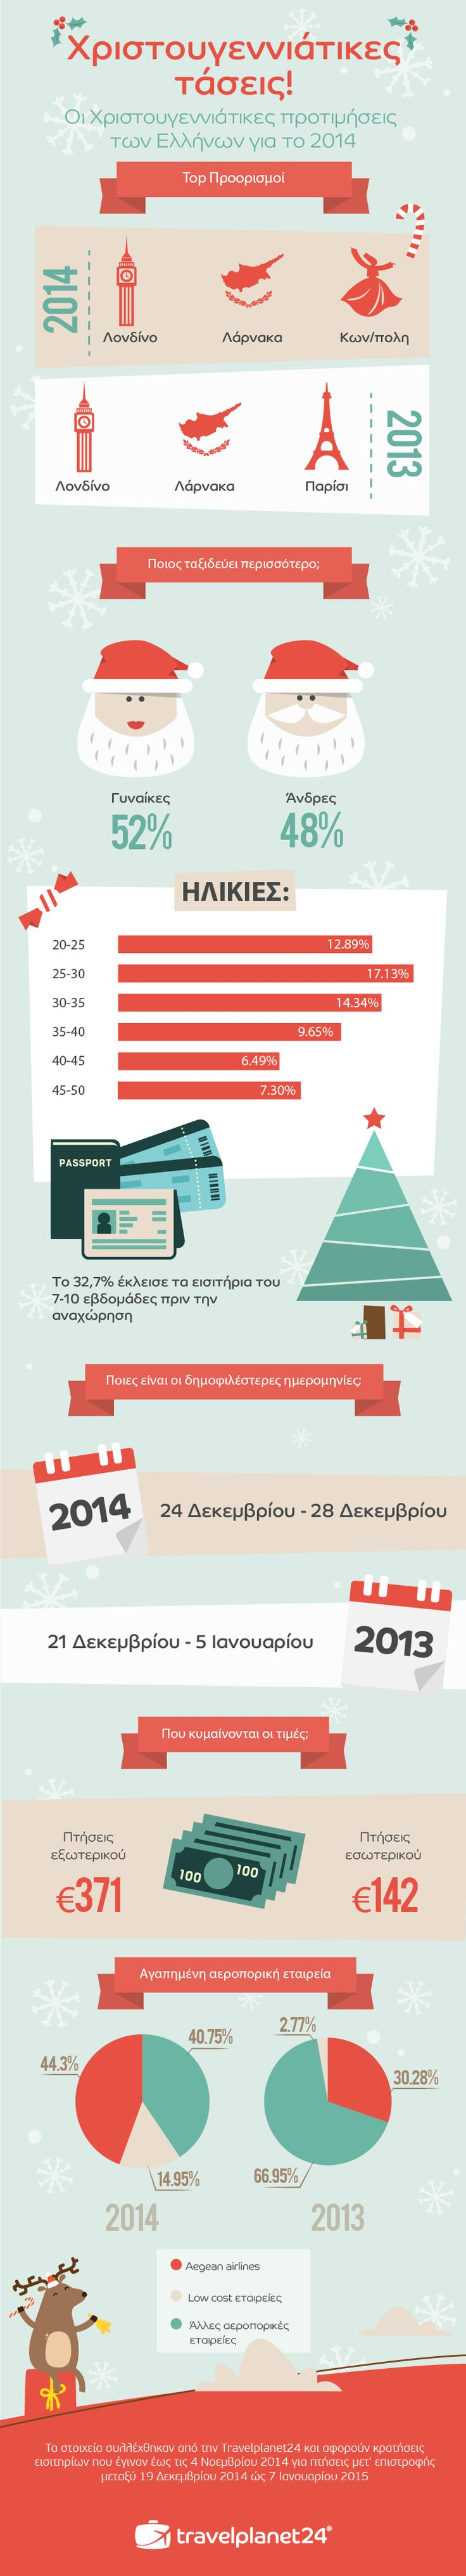 Xmas Travel Trends 2014 for the Greek Market! #travelplanet24 #infographic #xmas #travel #trends